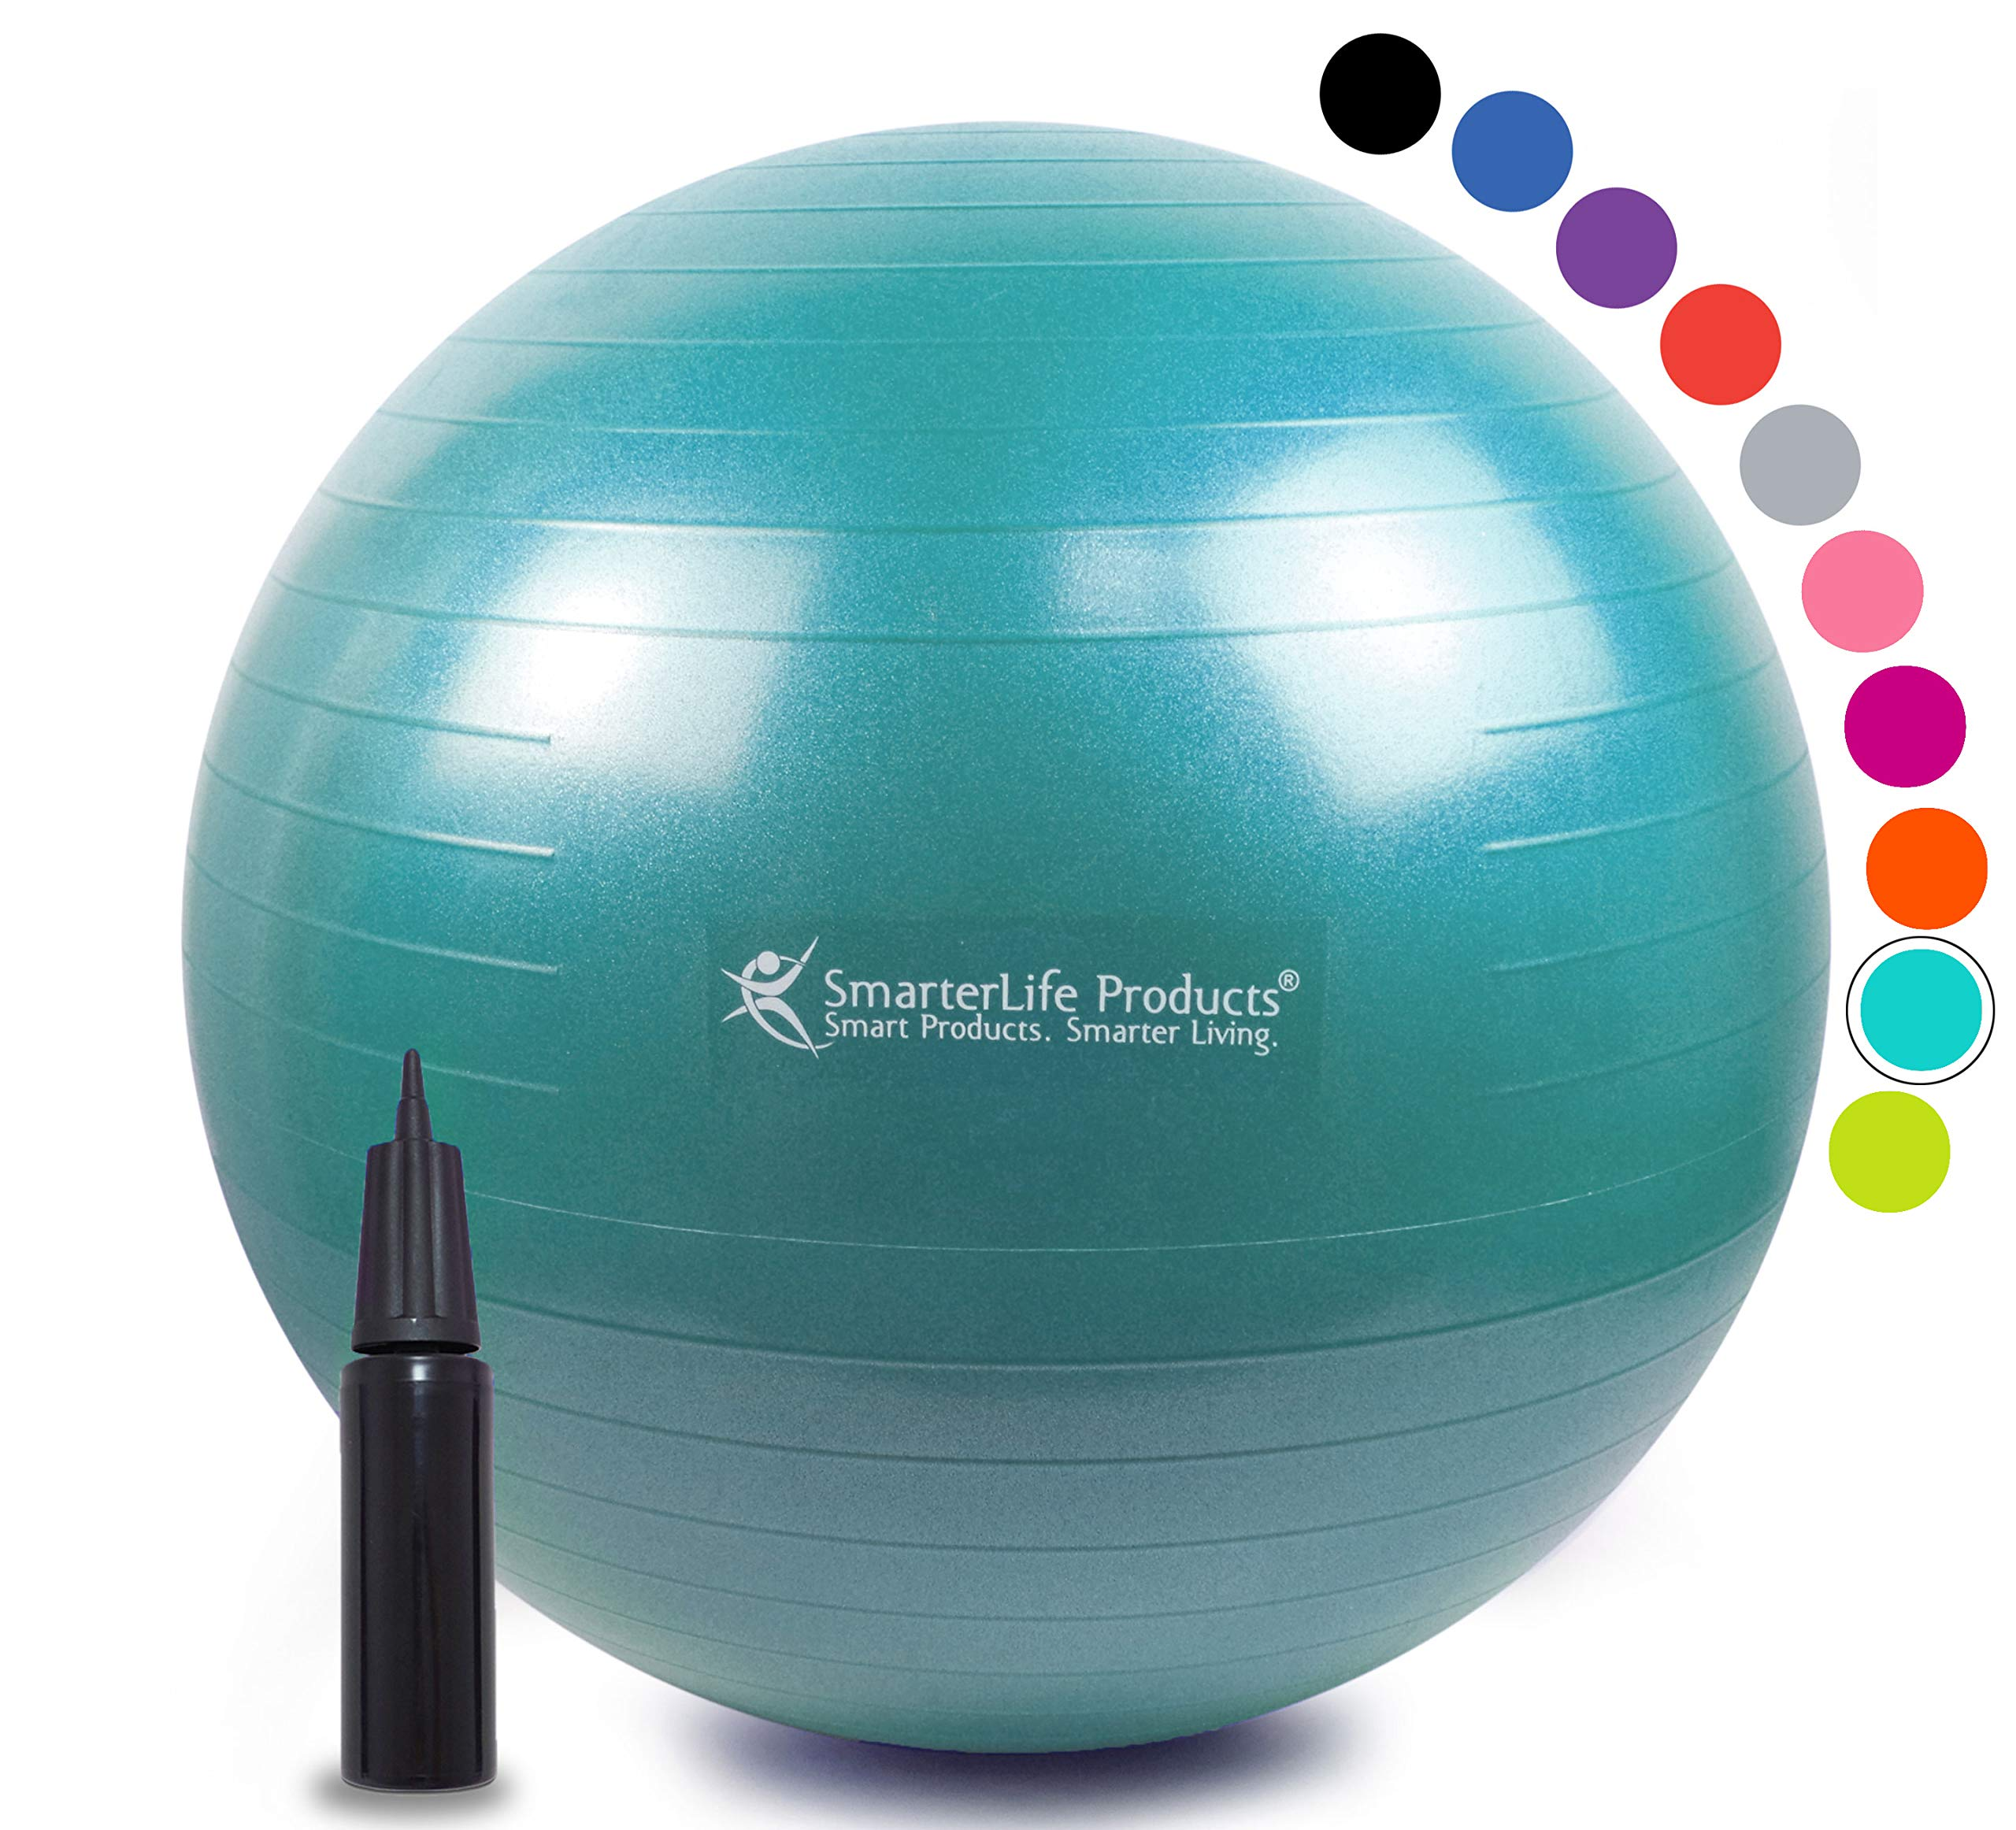 Exercise Ball for Yoga, Balance, Stability from SmarterLife - Fitness, Pilates, Birthing, Therapy, Office Ball Chair, Classroom Flexible Seating - Anti Burst, No Slip, Workout Guide (Turquoise, 65 cm)